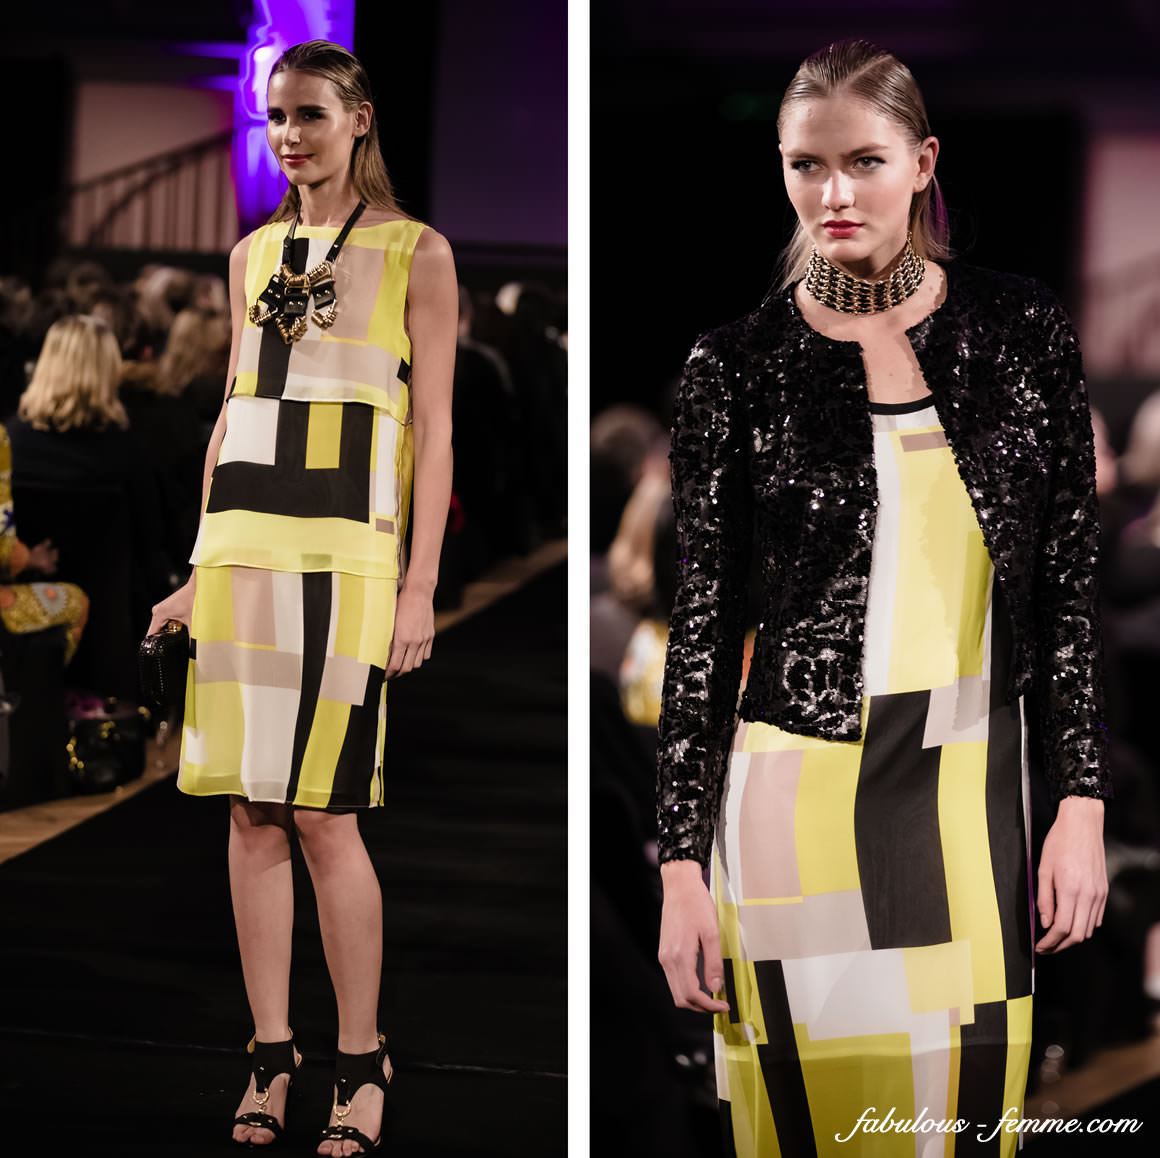 beautiful spring outfits at Melbourne Fashion Runway Show